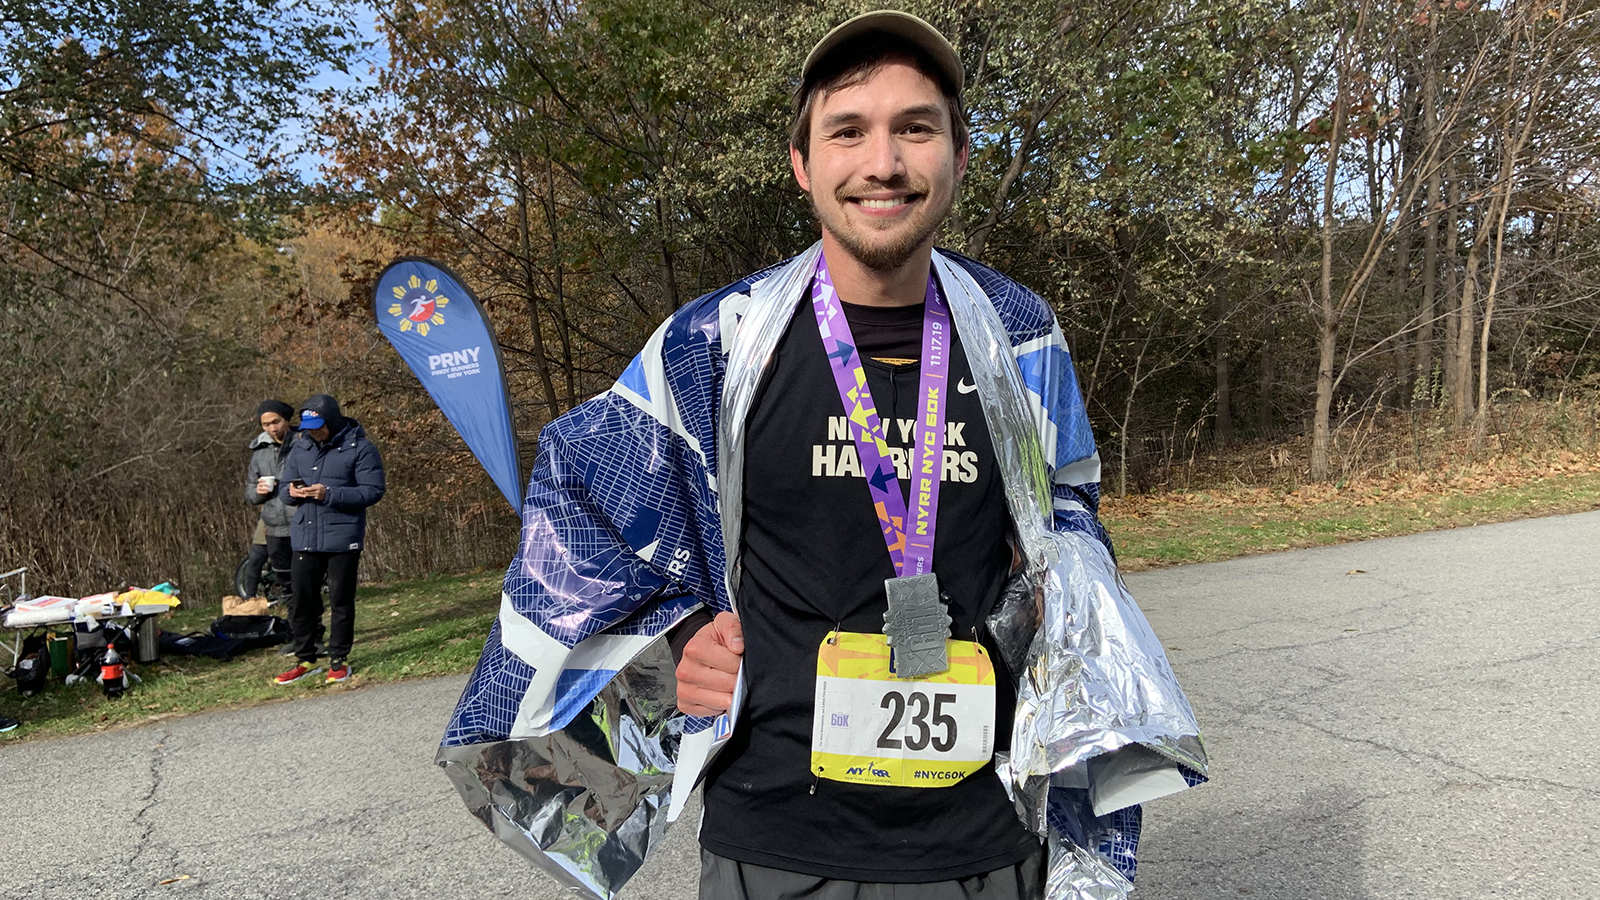 NYRR 60K runner smiling with his medal